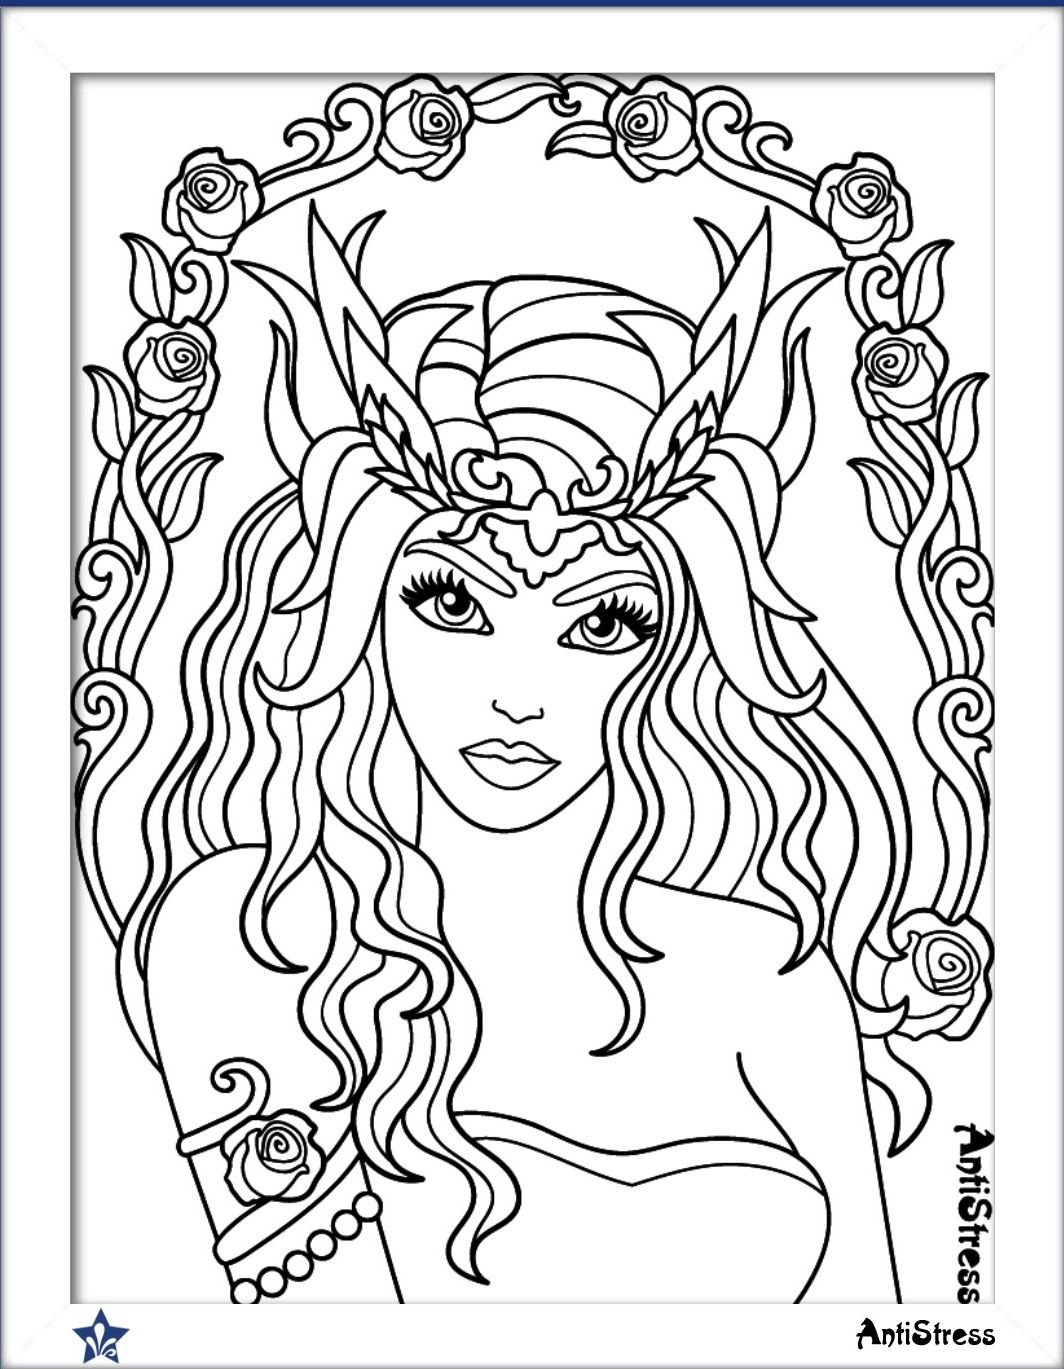 colouring page coloring pages for adults pinterest